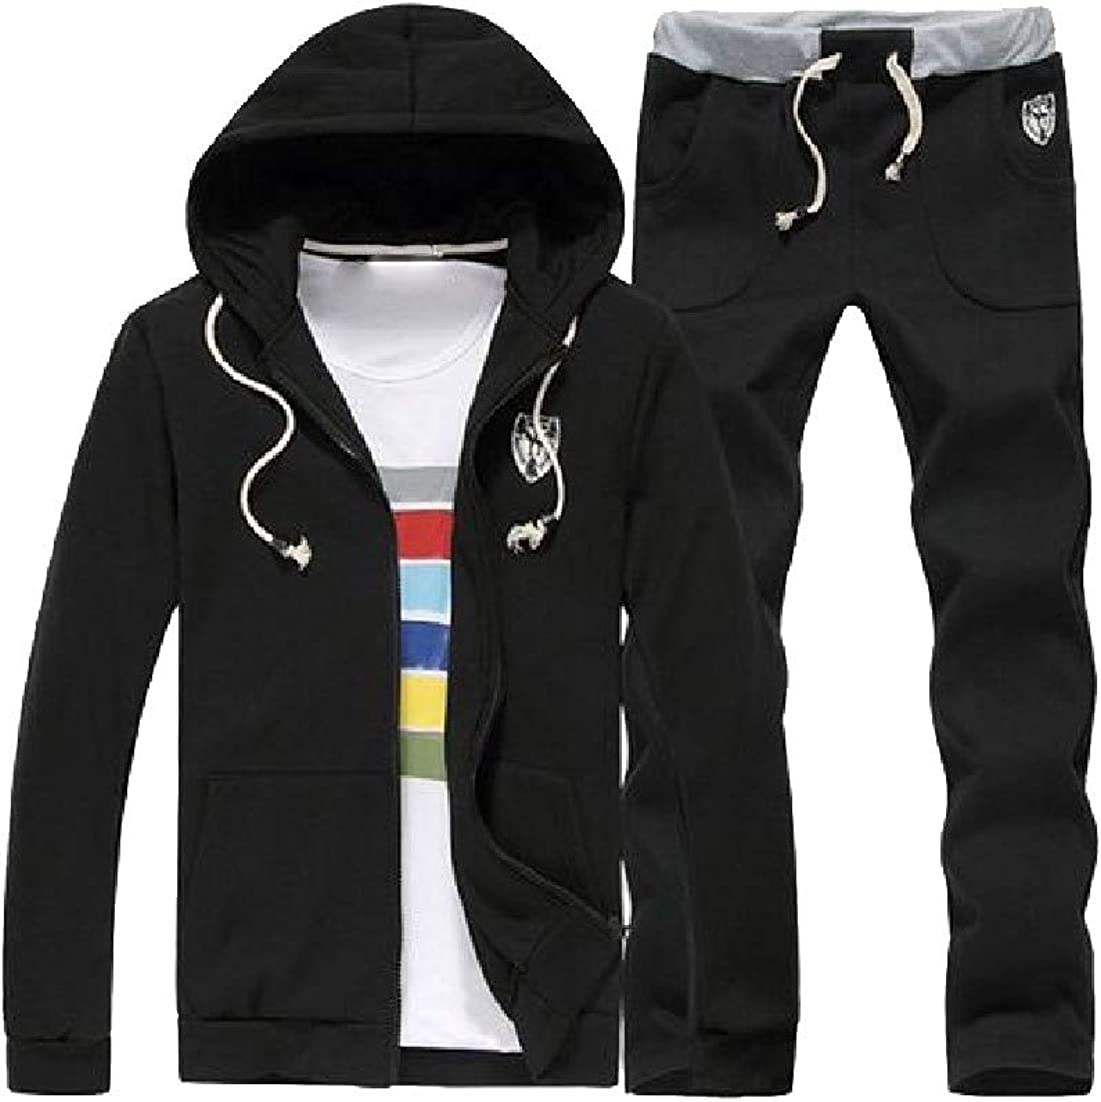 AngelSpace Mens Stitch Casual Pockets Hoodie Drawstring Zip-Up Sweatsuit Set